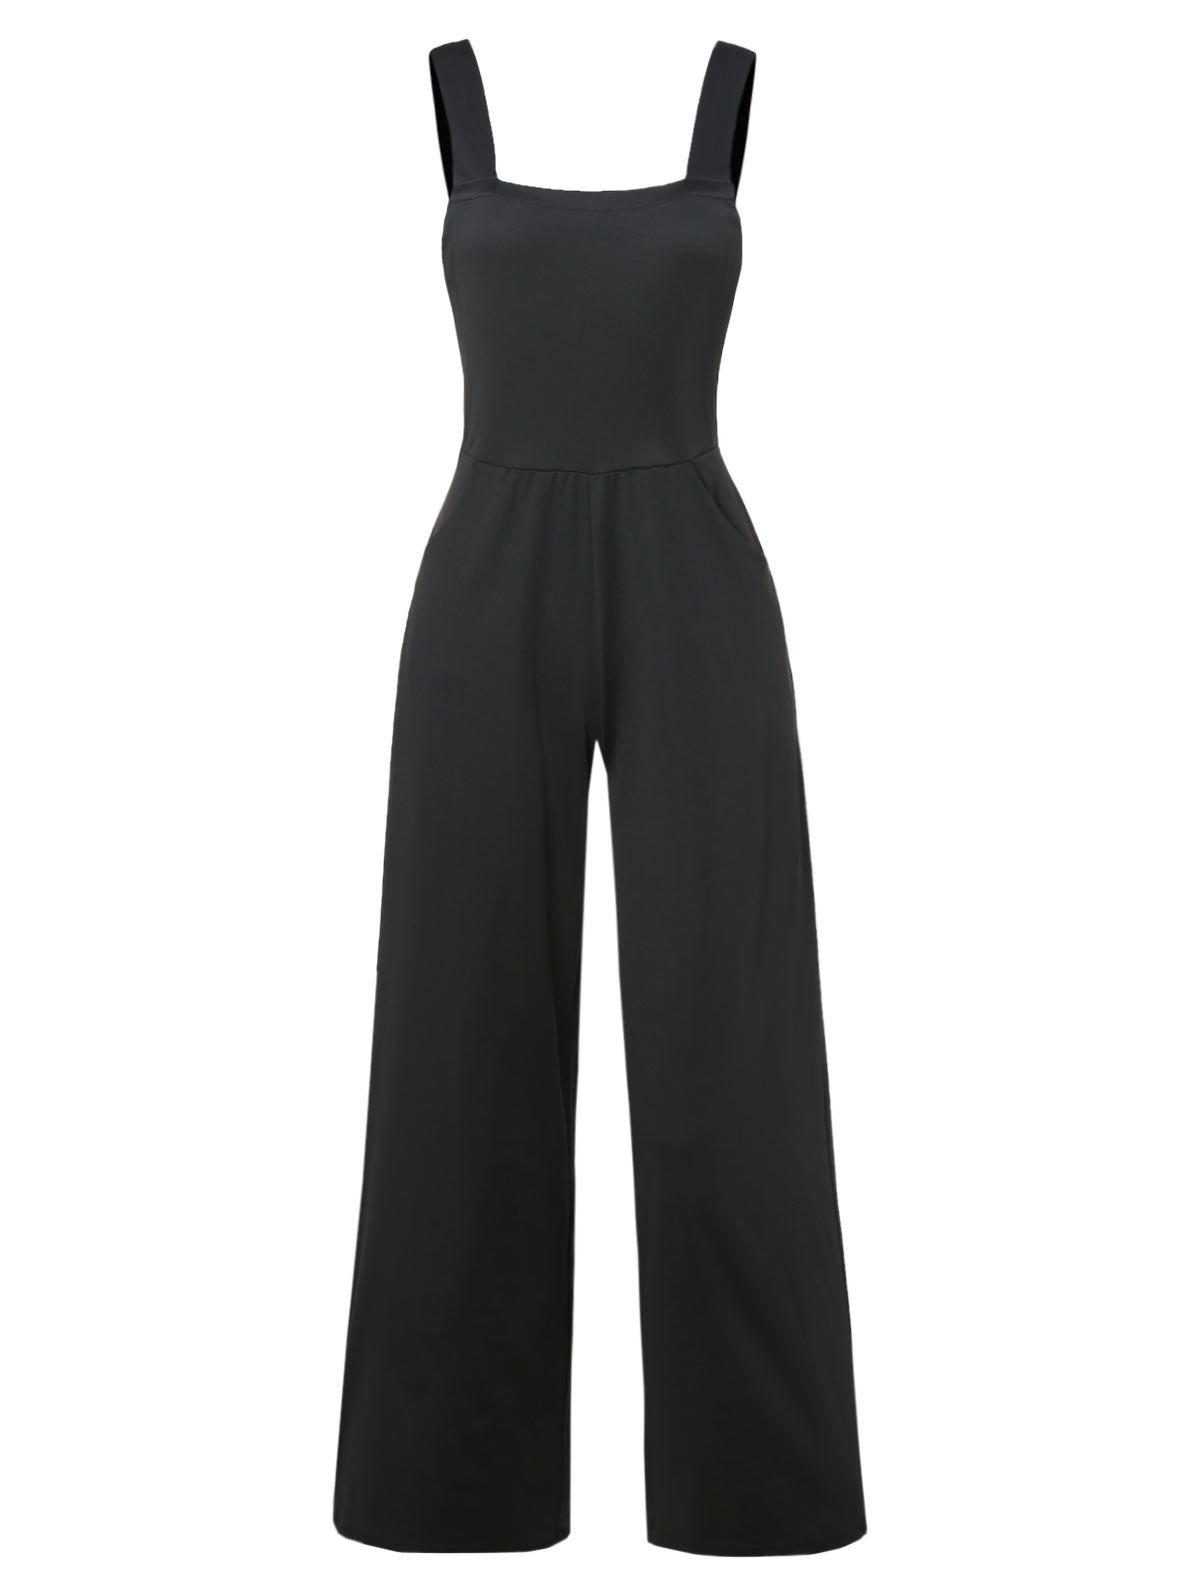 New Overall Wide Leg Jumpsuit